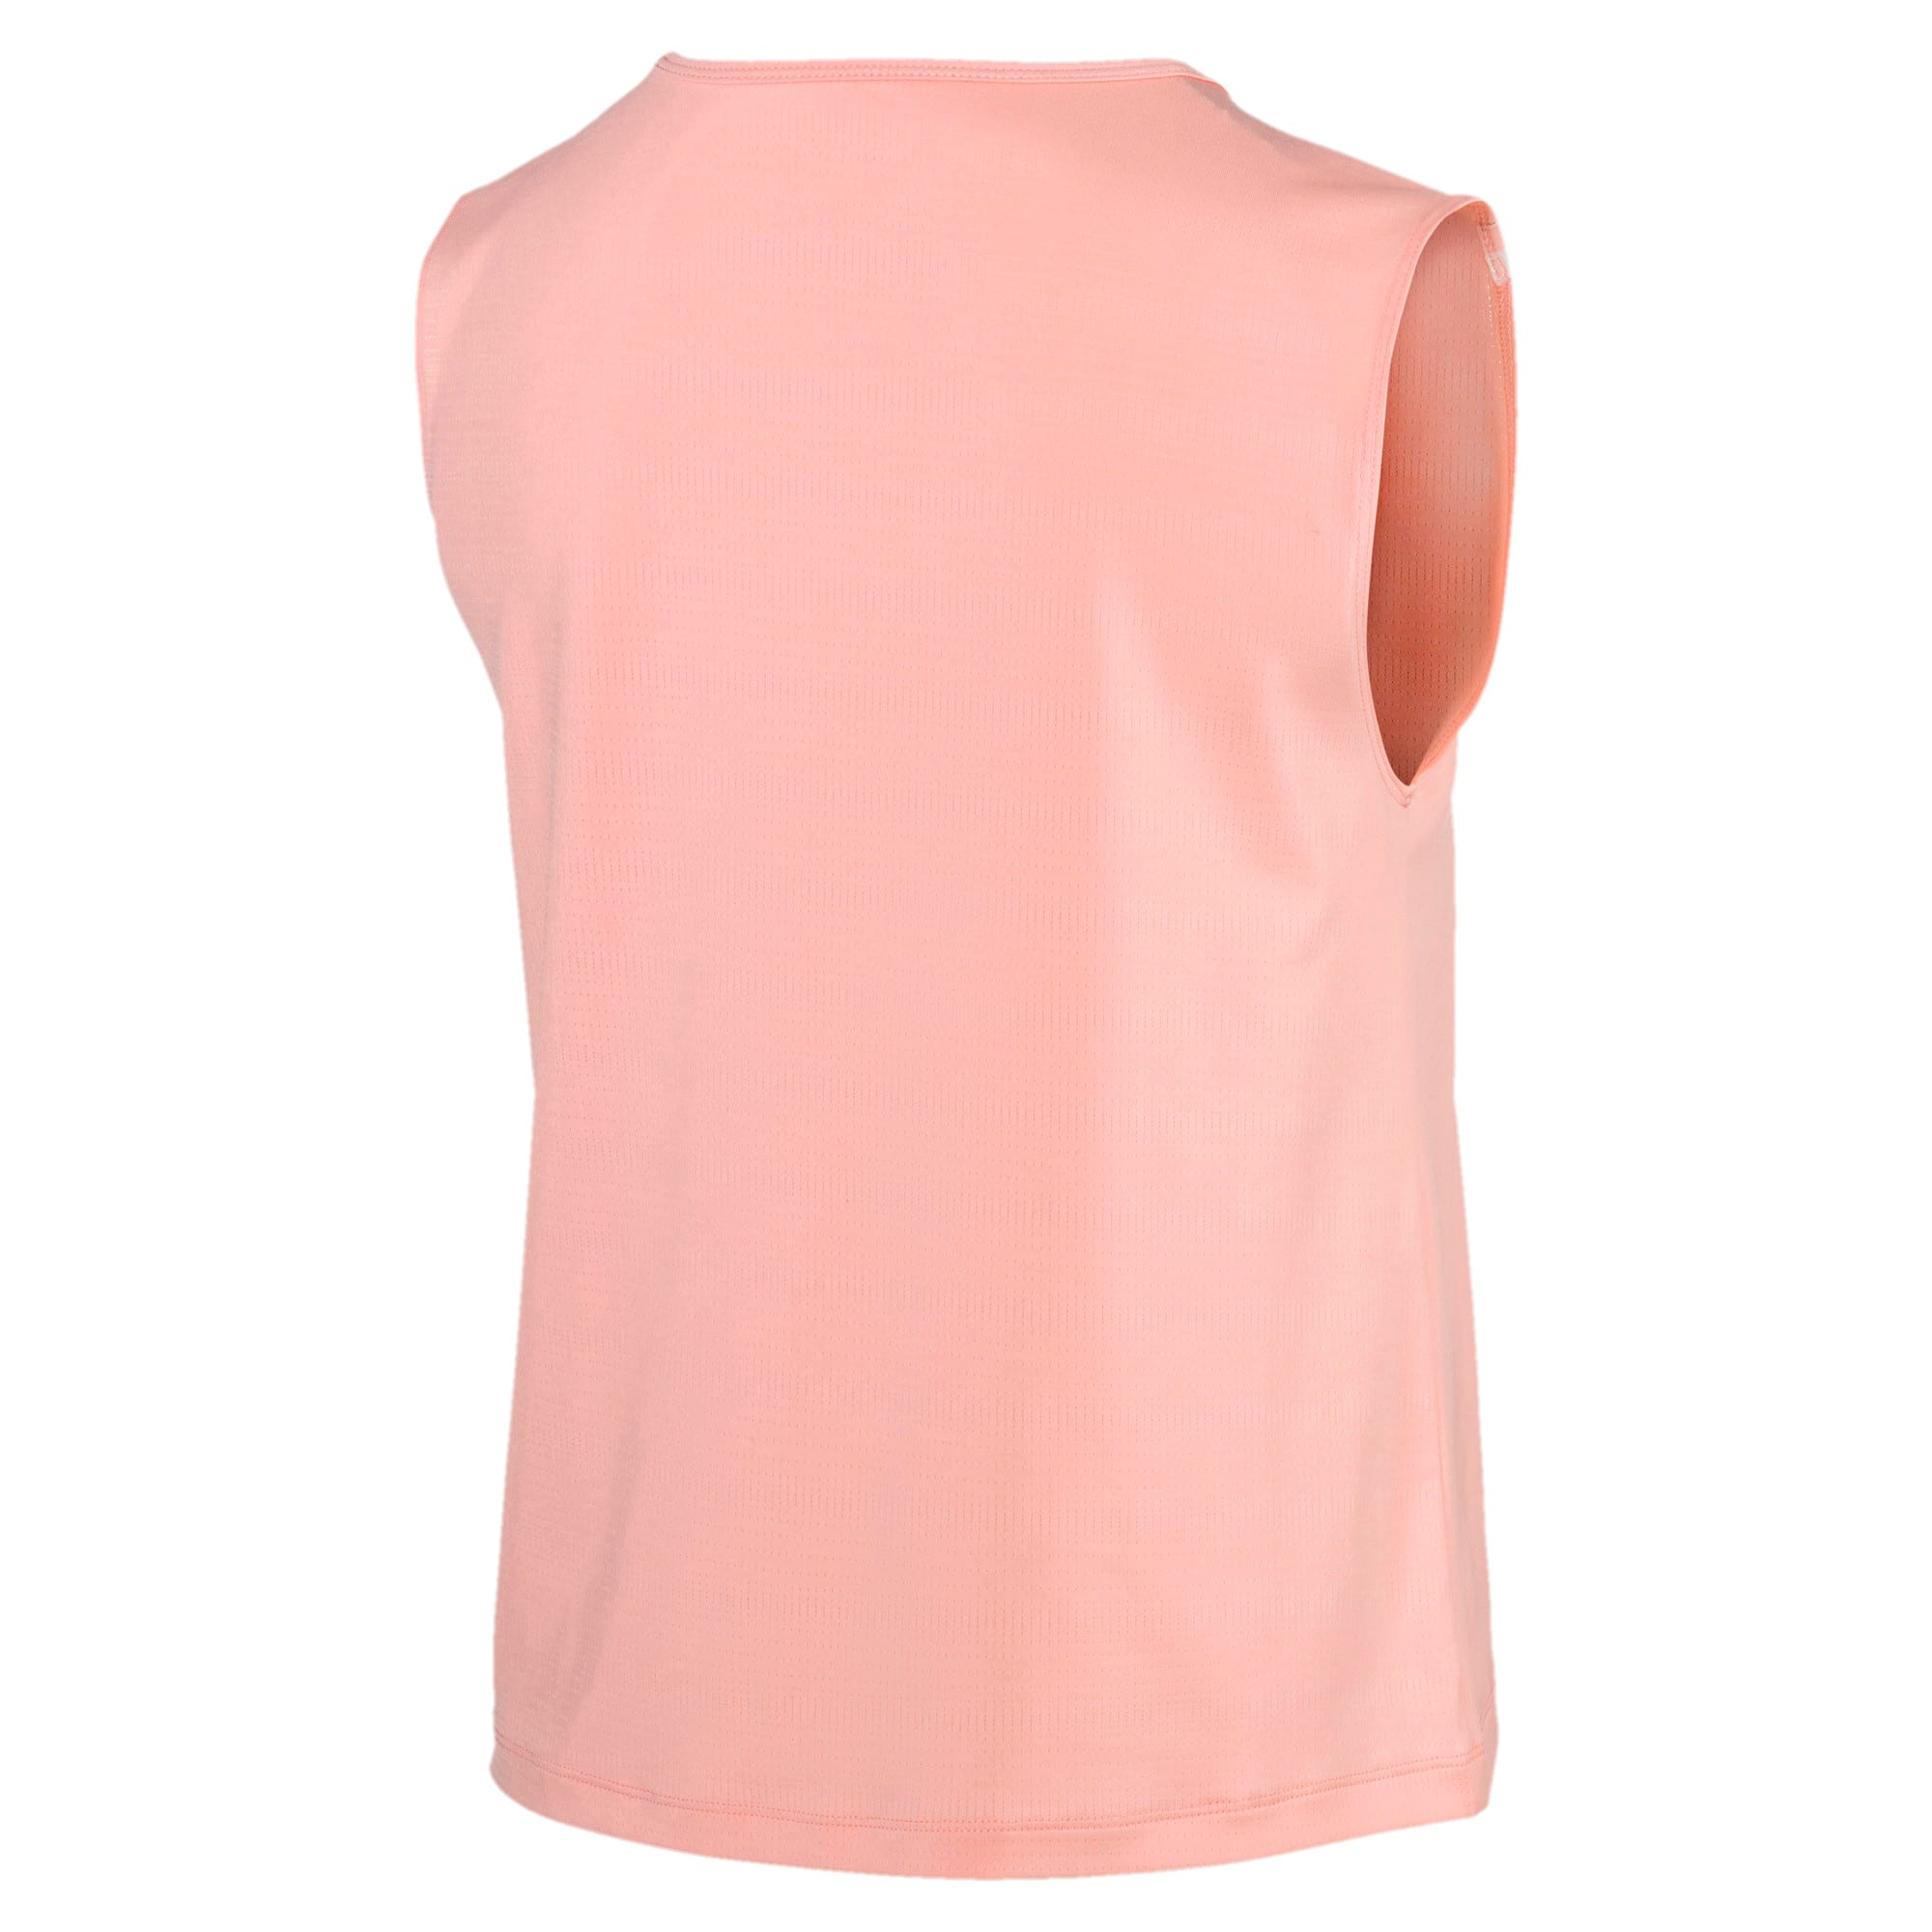 Thumbnail 2 of Soft Sports Women's Tank, Peach Bud, medium